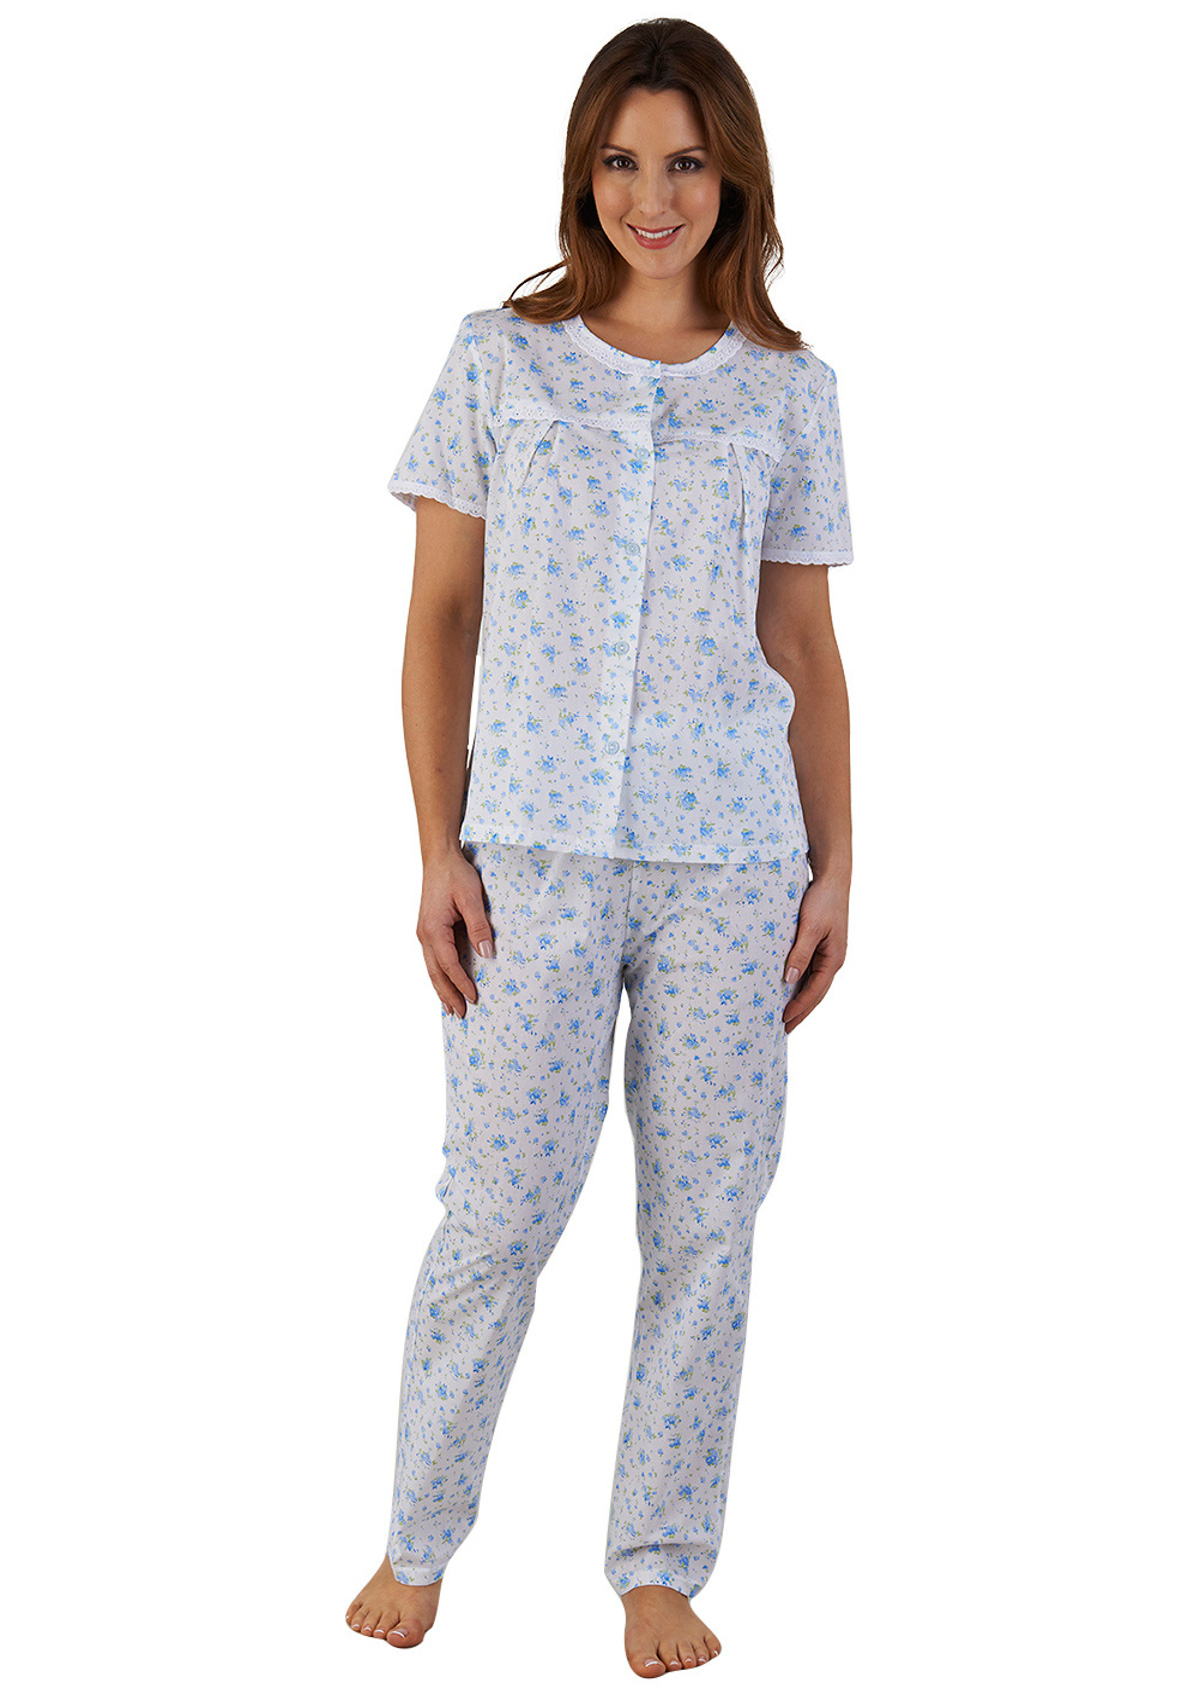 Shop our range of Pyjamas For women. Shop our fantastic collection from premium brands online at David Jones. Free & fast delivery available.